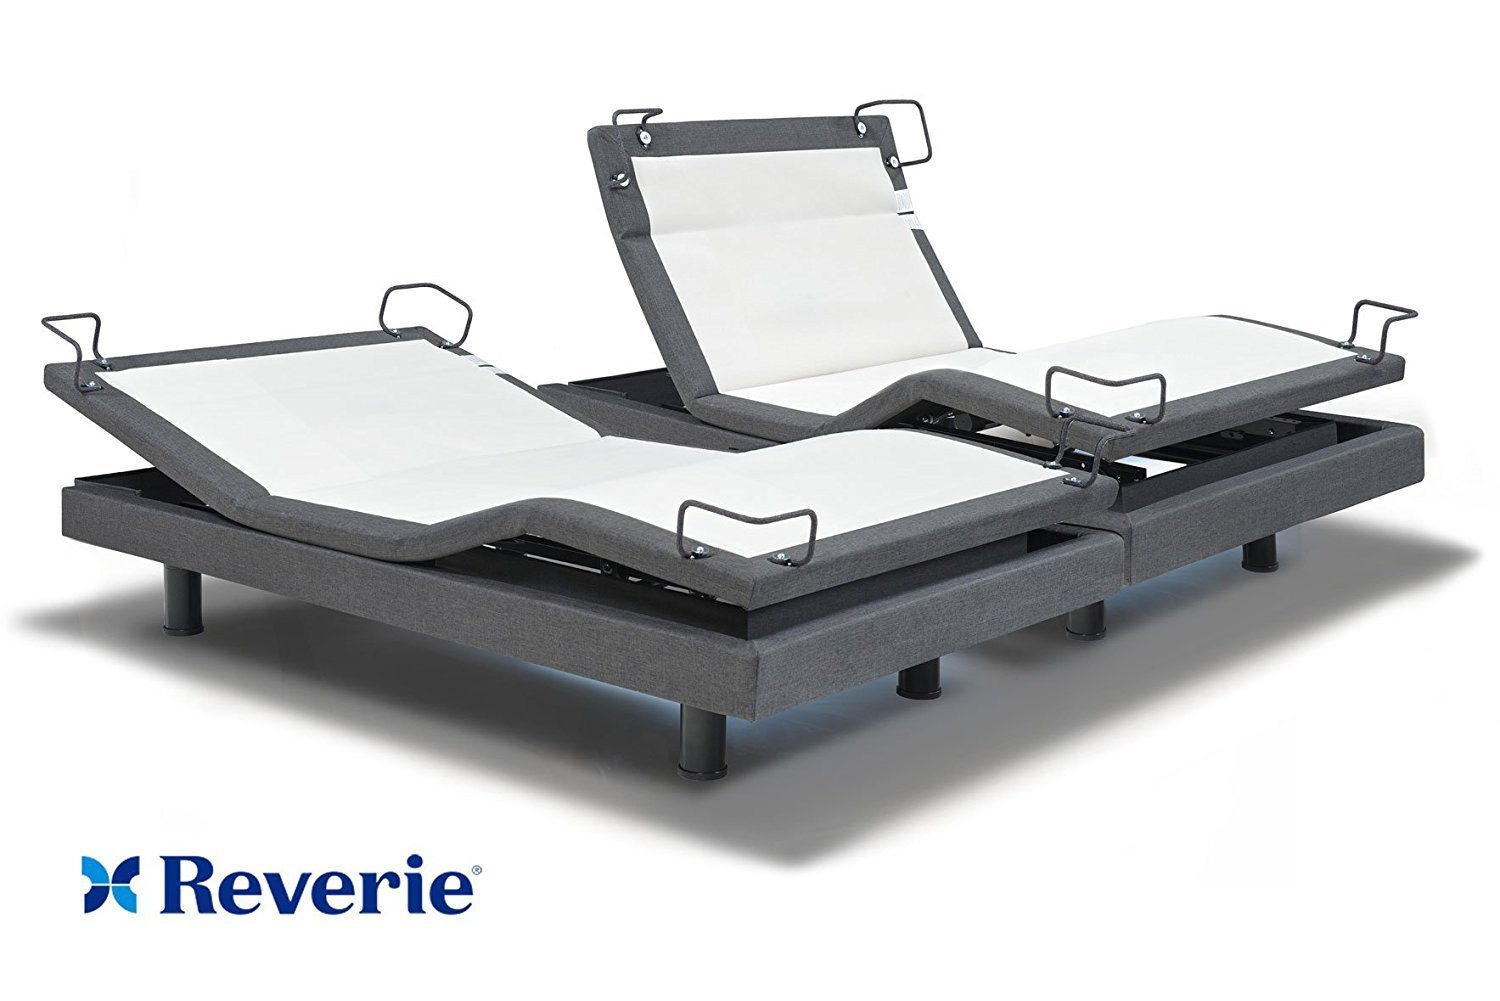 Reverie  Spplit King Bed